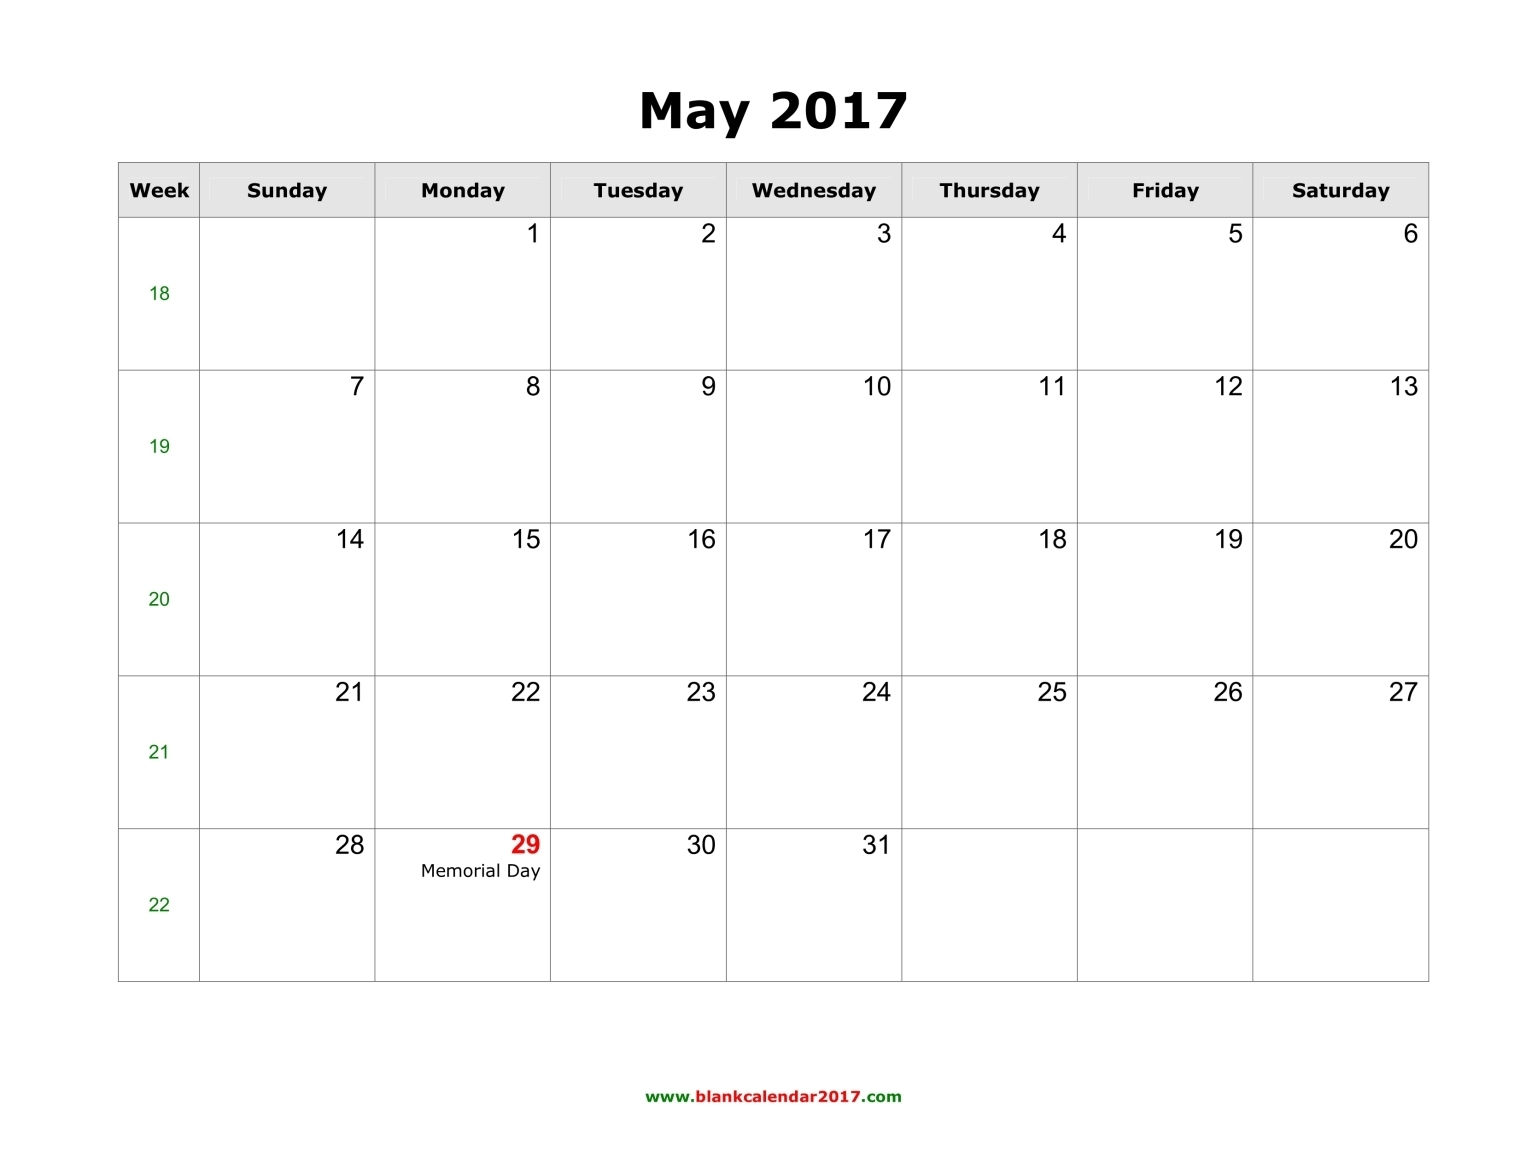 Blank Calendar for May 2017